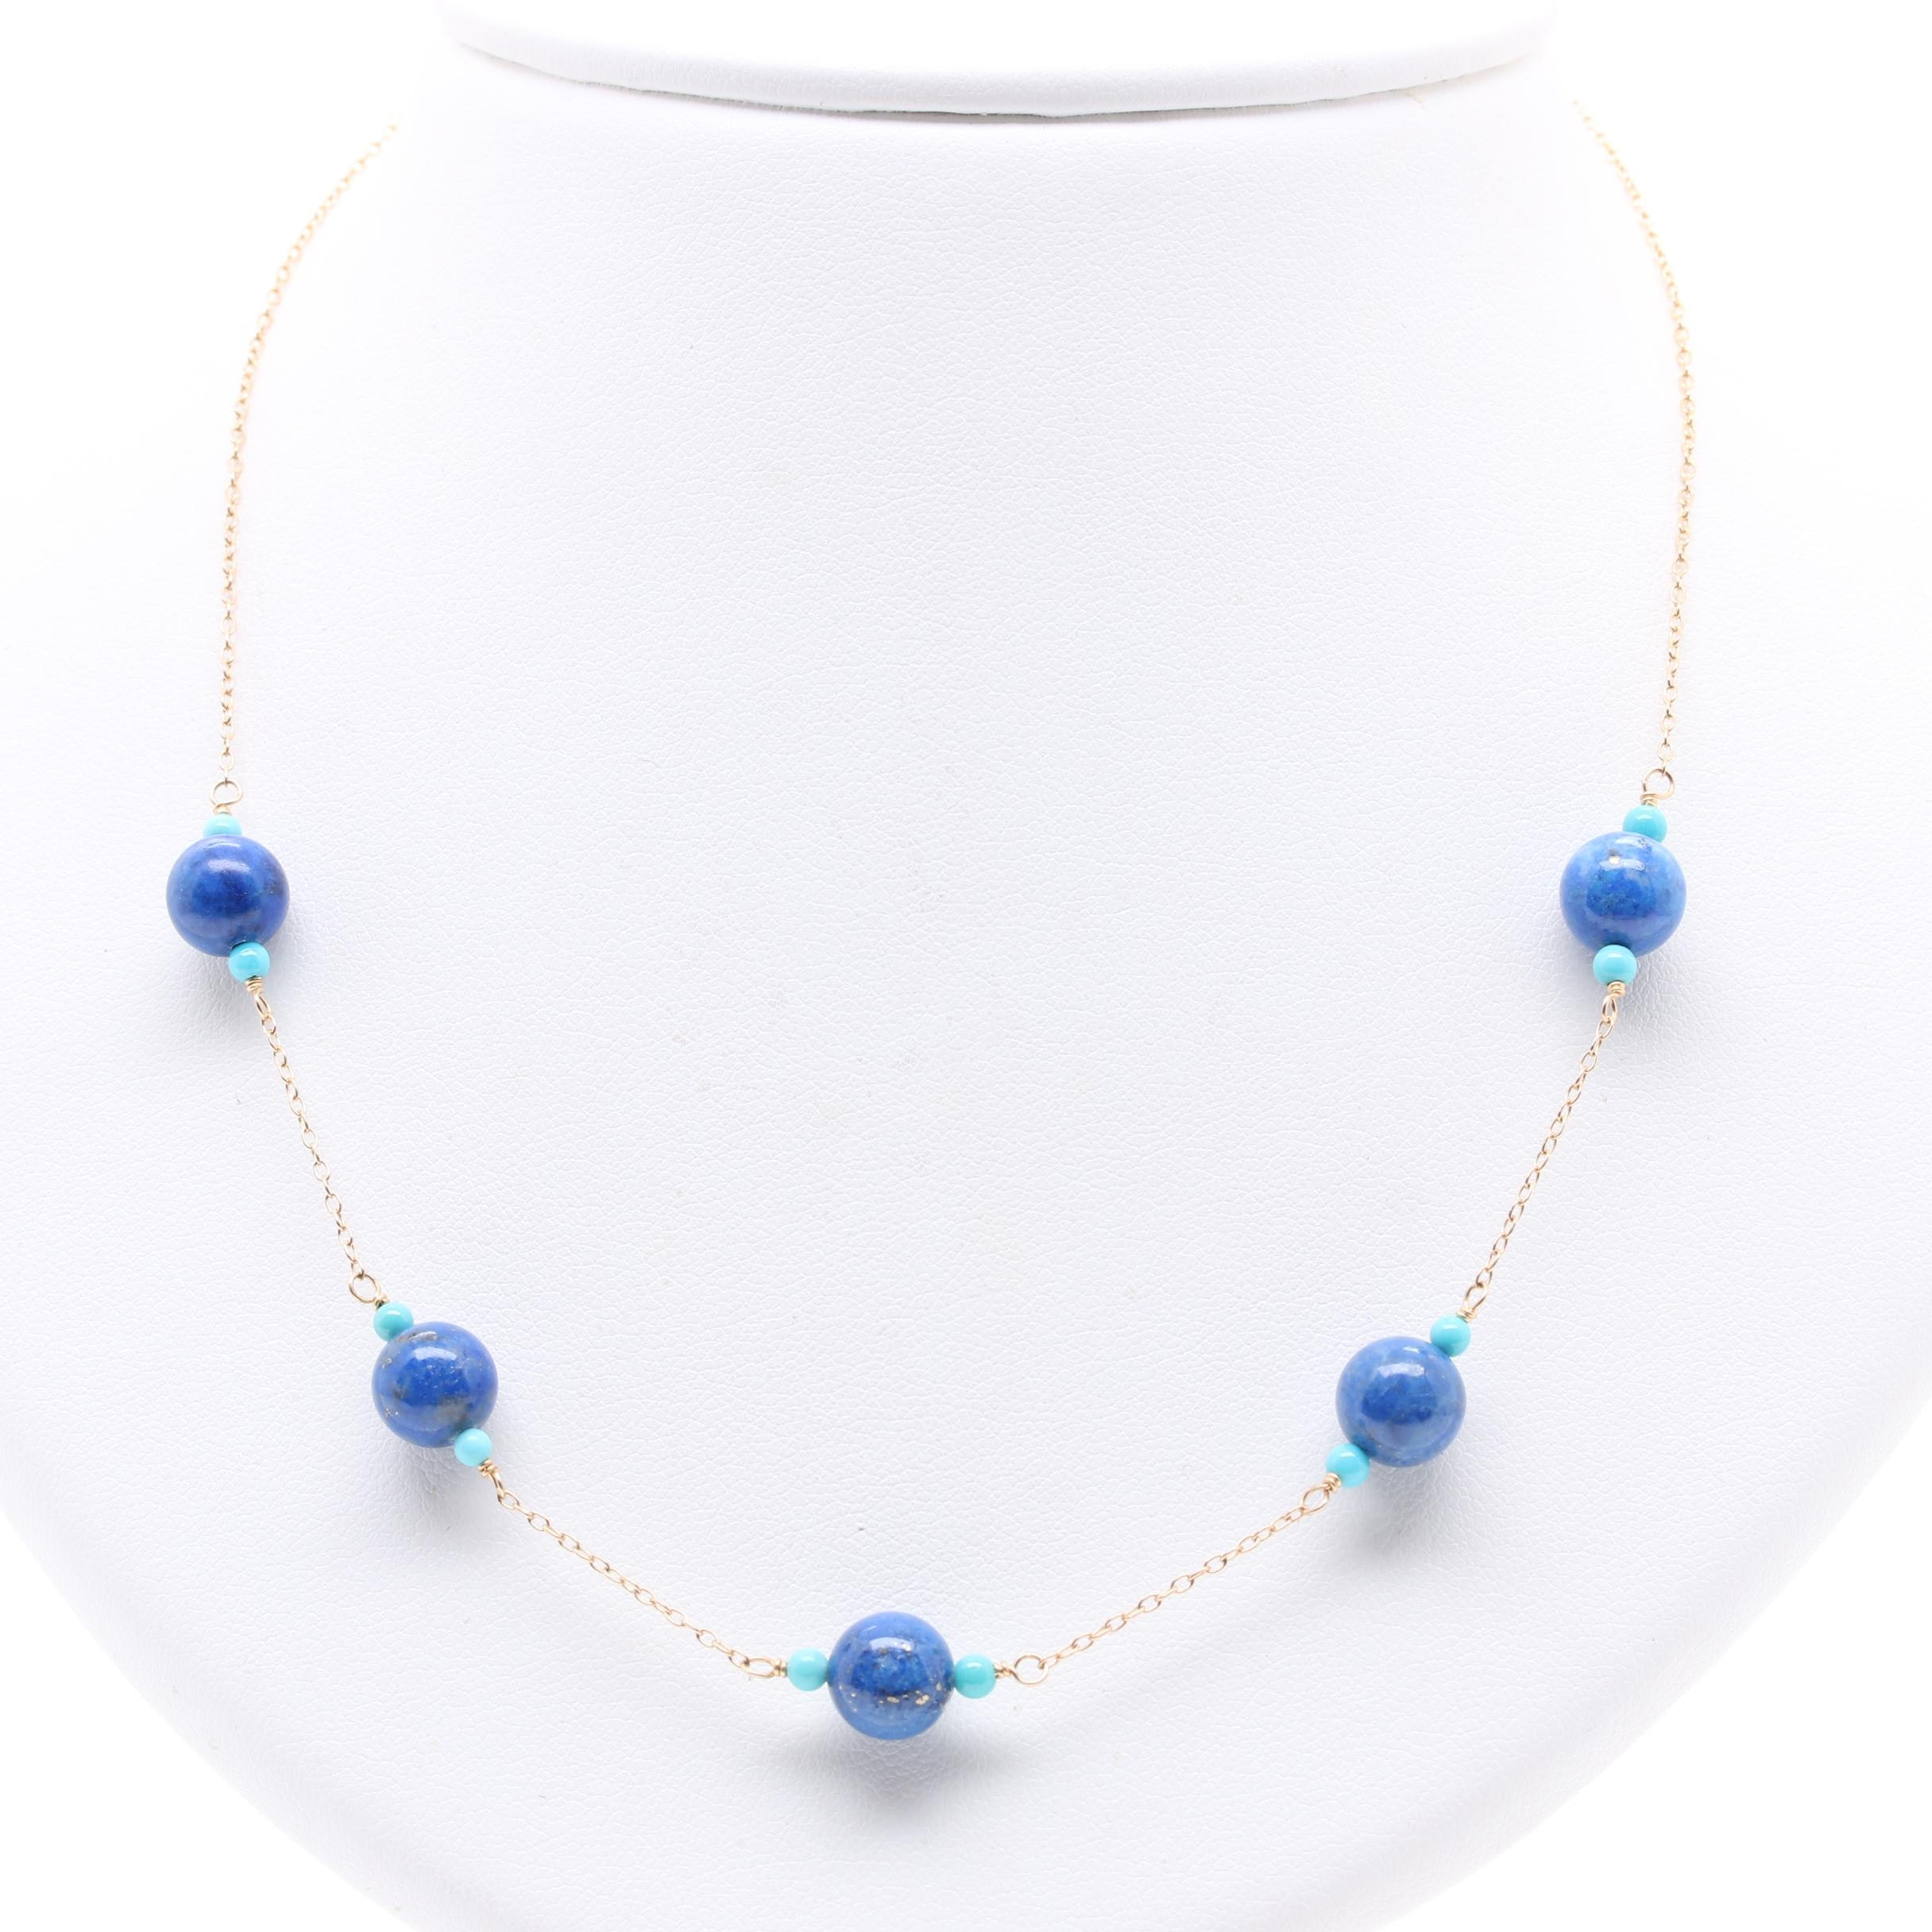 Zoe B 14K Yellow Gold Lapis Lazuli and Turquoise Stationary Necklace